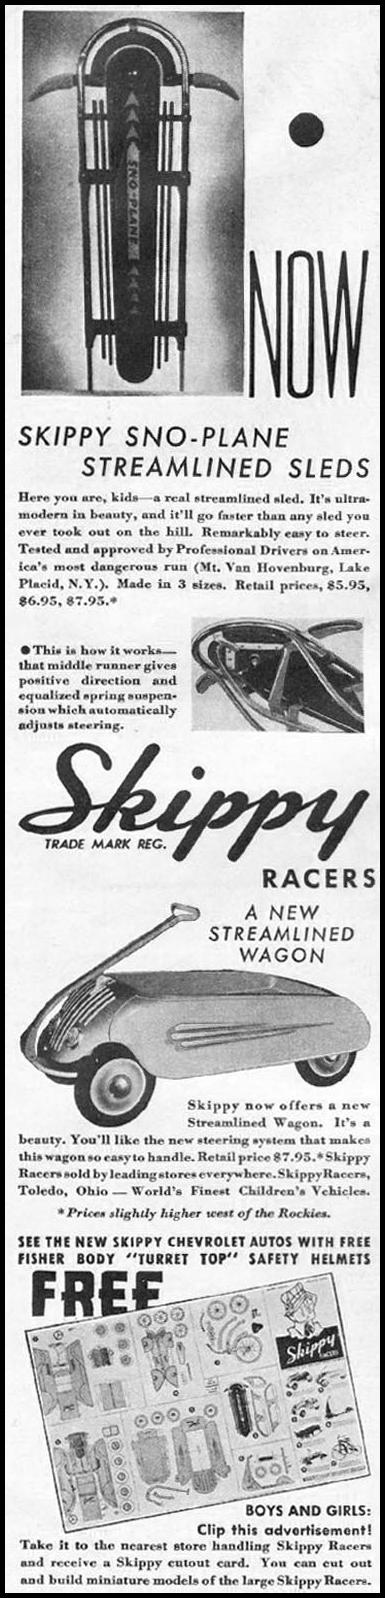 SKIPPY RACERS GOOD HOUSEKEEPING 12/01/1935 p. 174